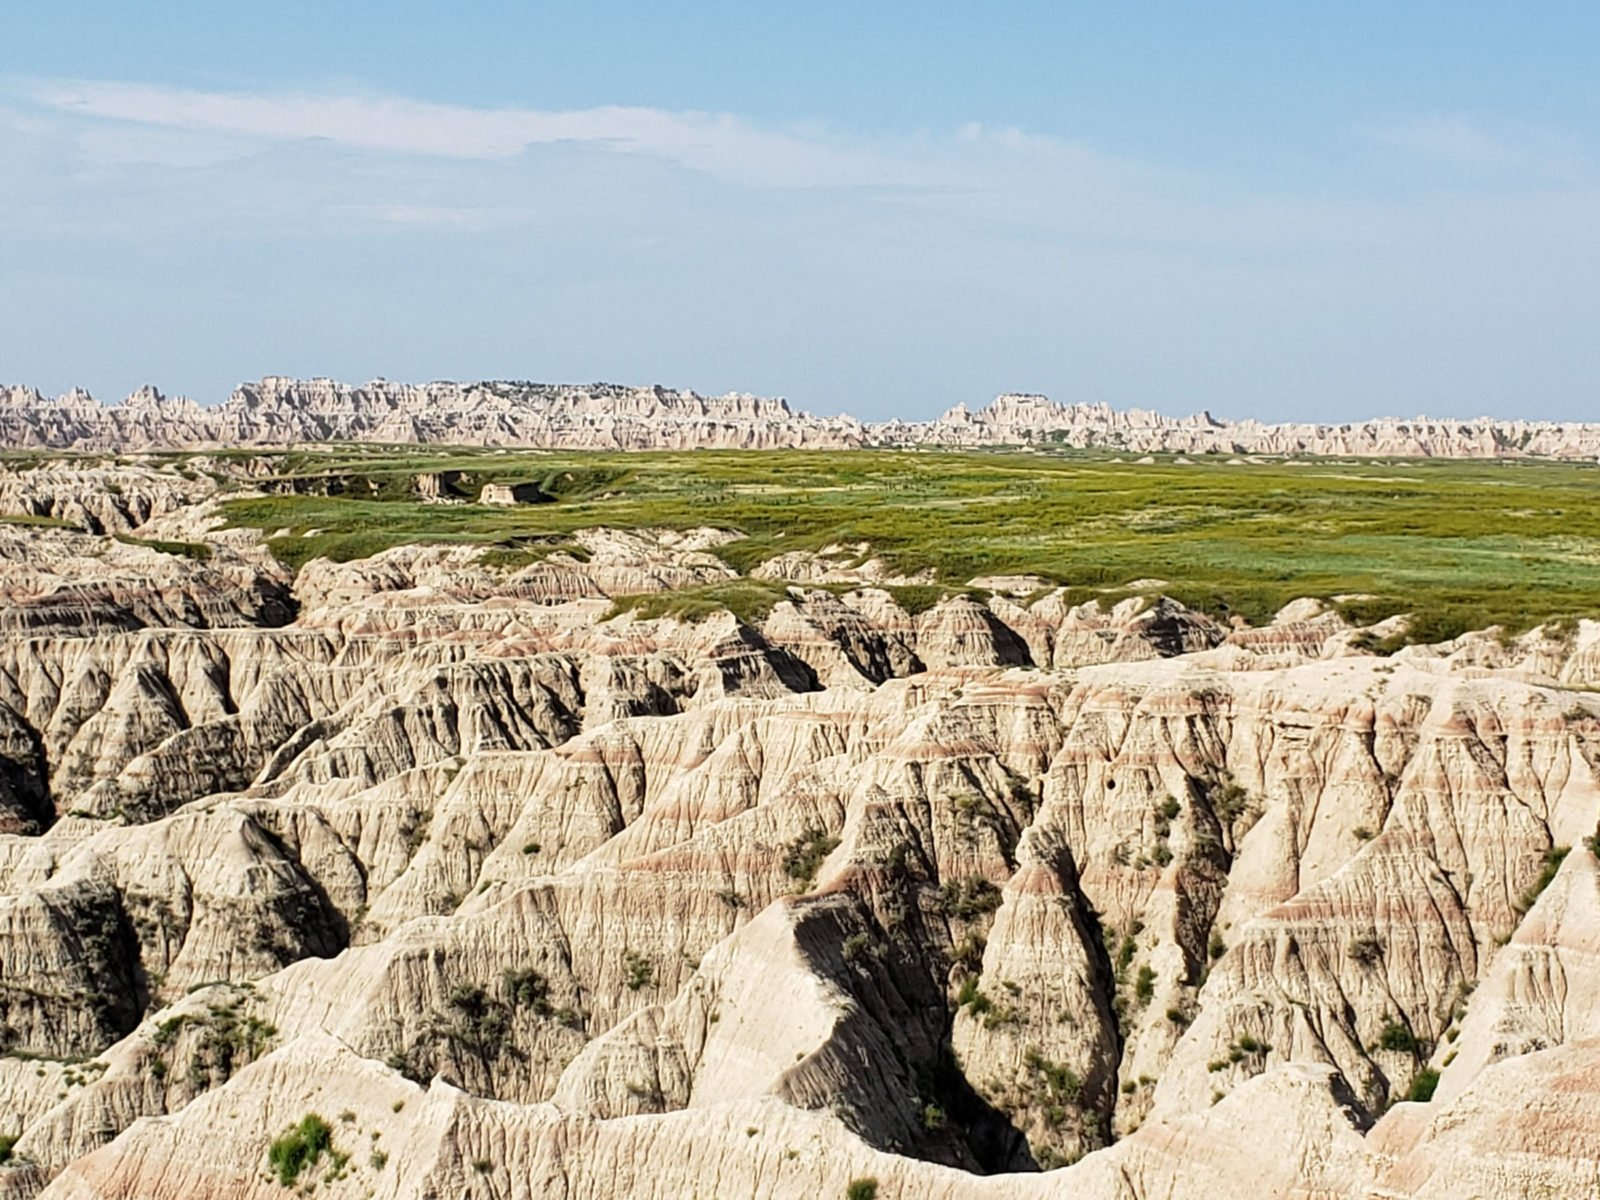 Badlands canyon and prairie